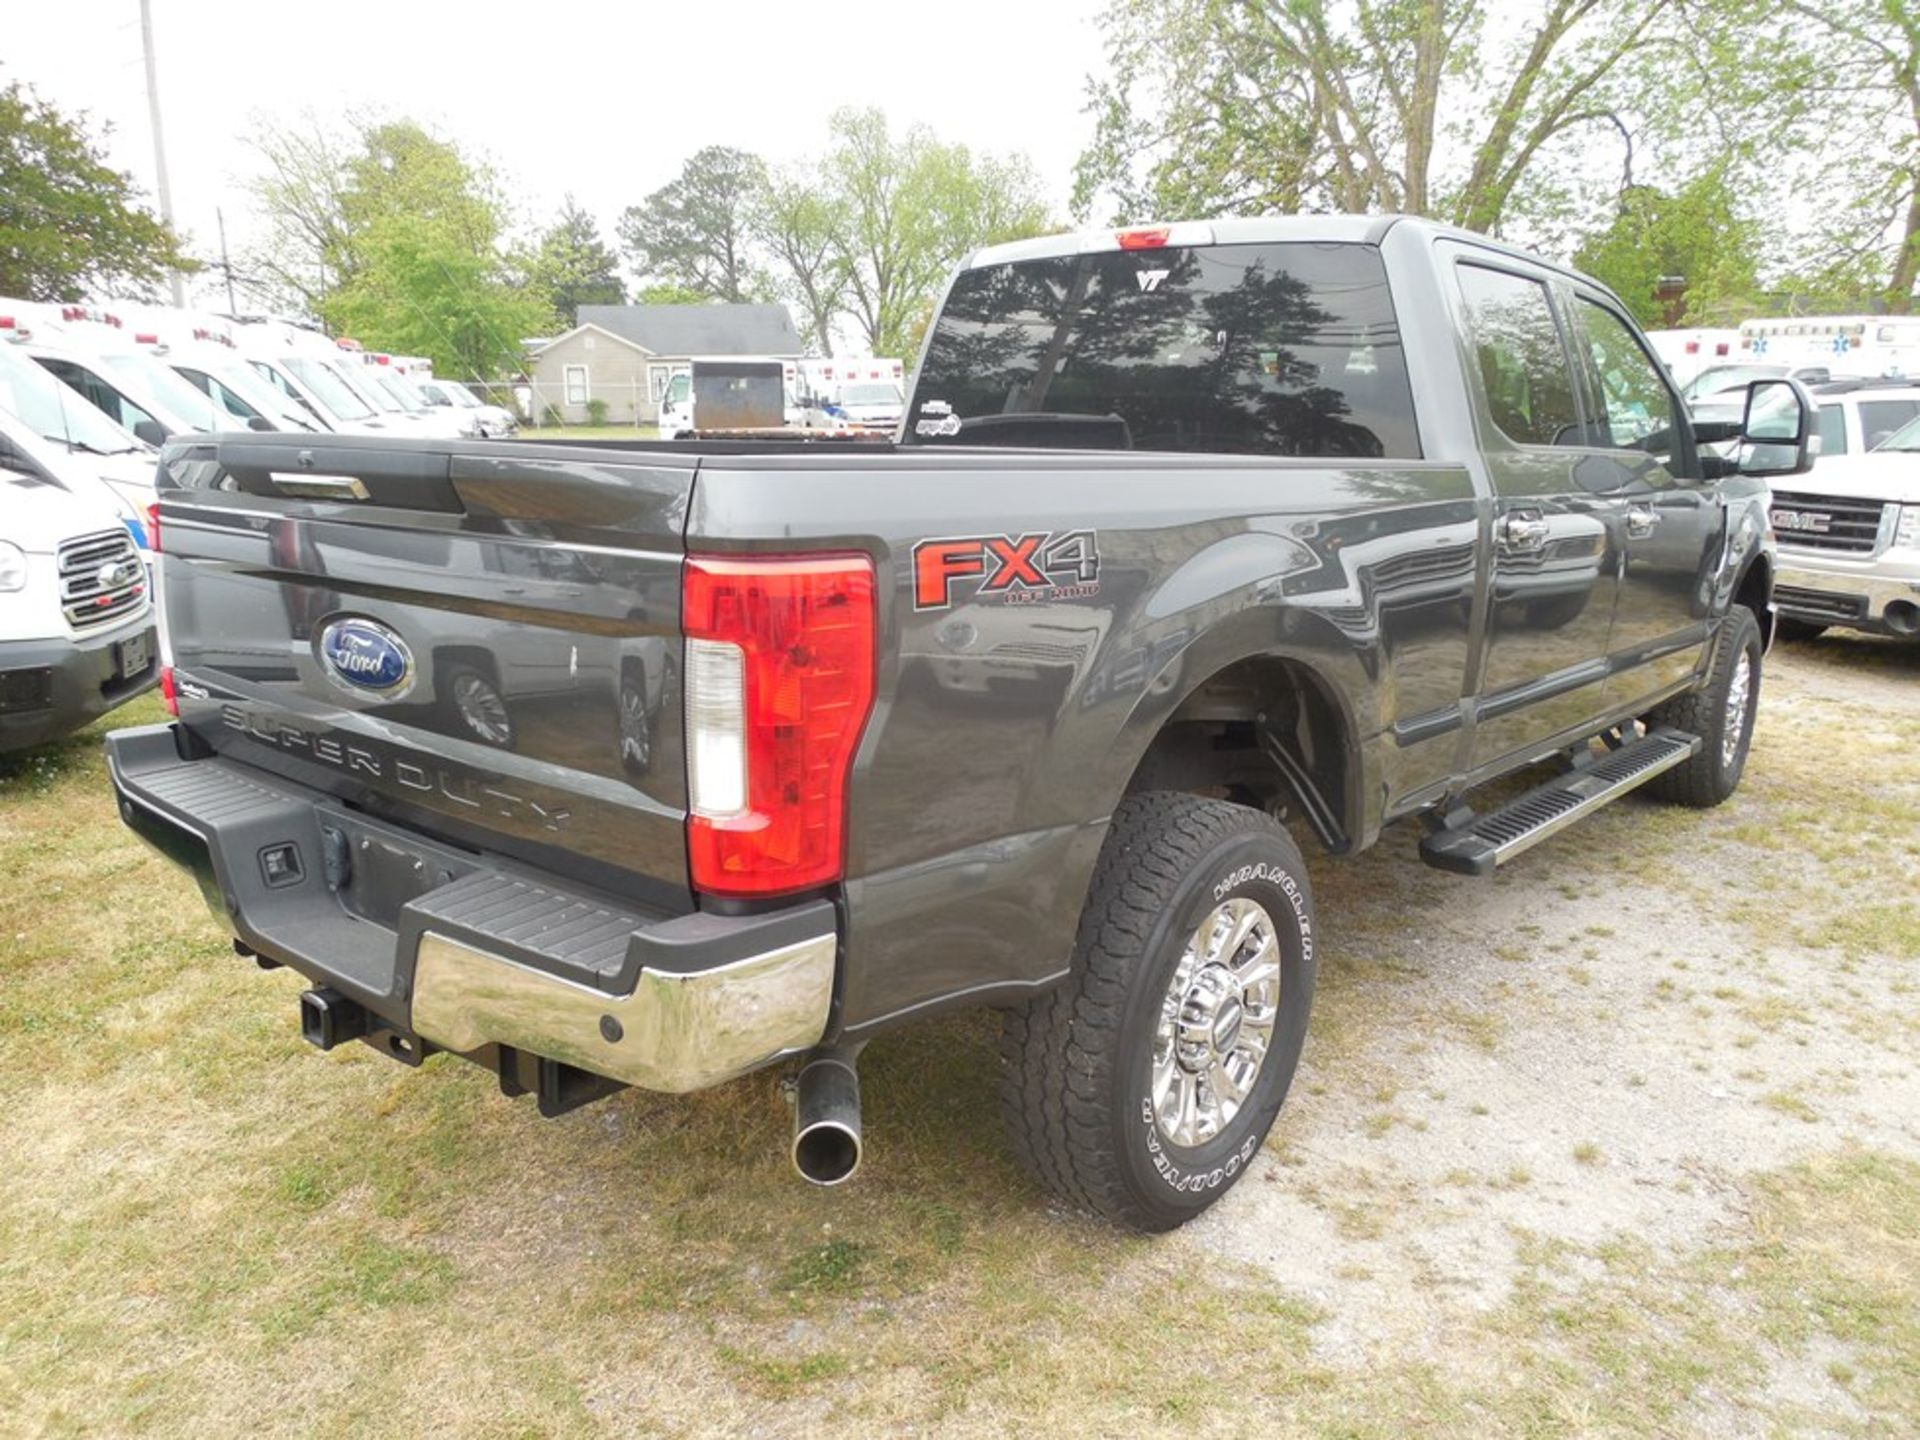 2019 Ford F250 XLT 4wd, 4dr, gas, vin# 1FT7W2B61KEC95867 19,999 miles - Image 4 of 7